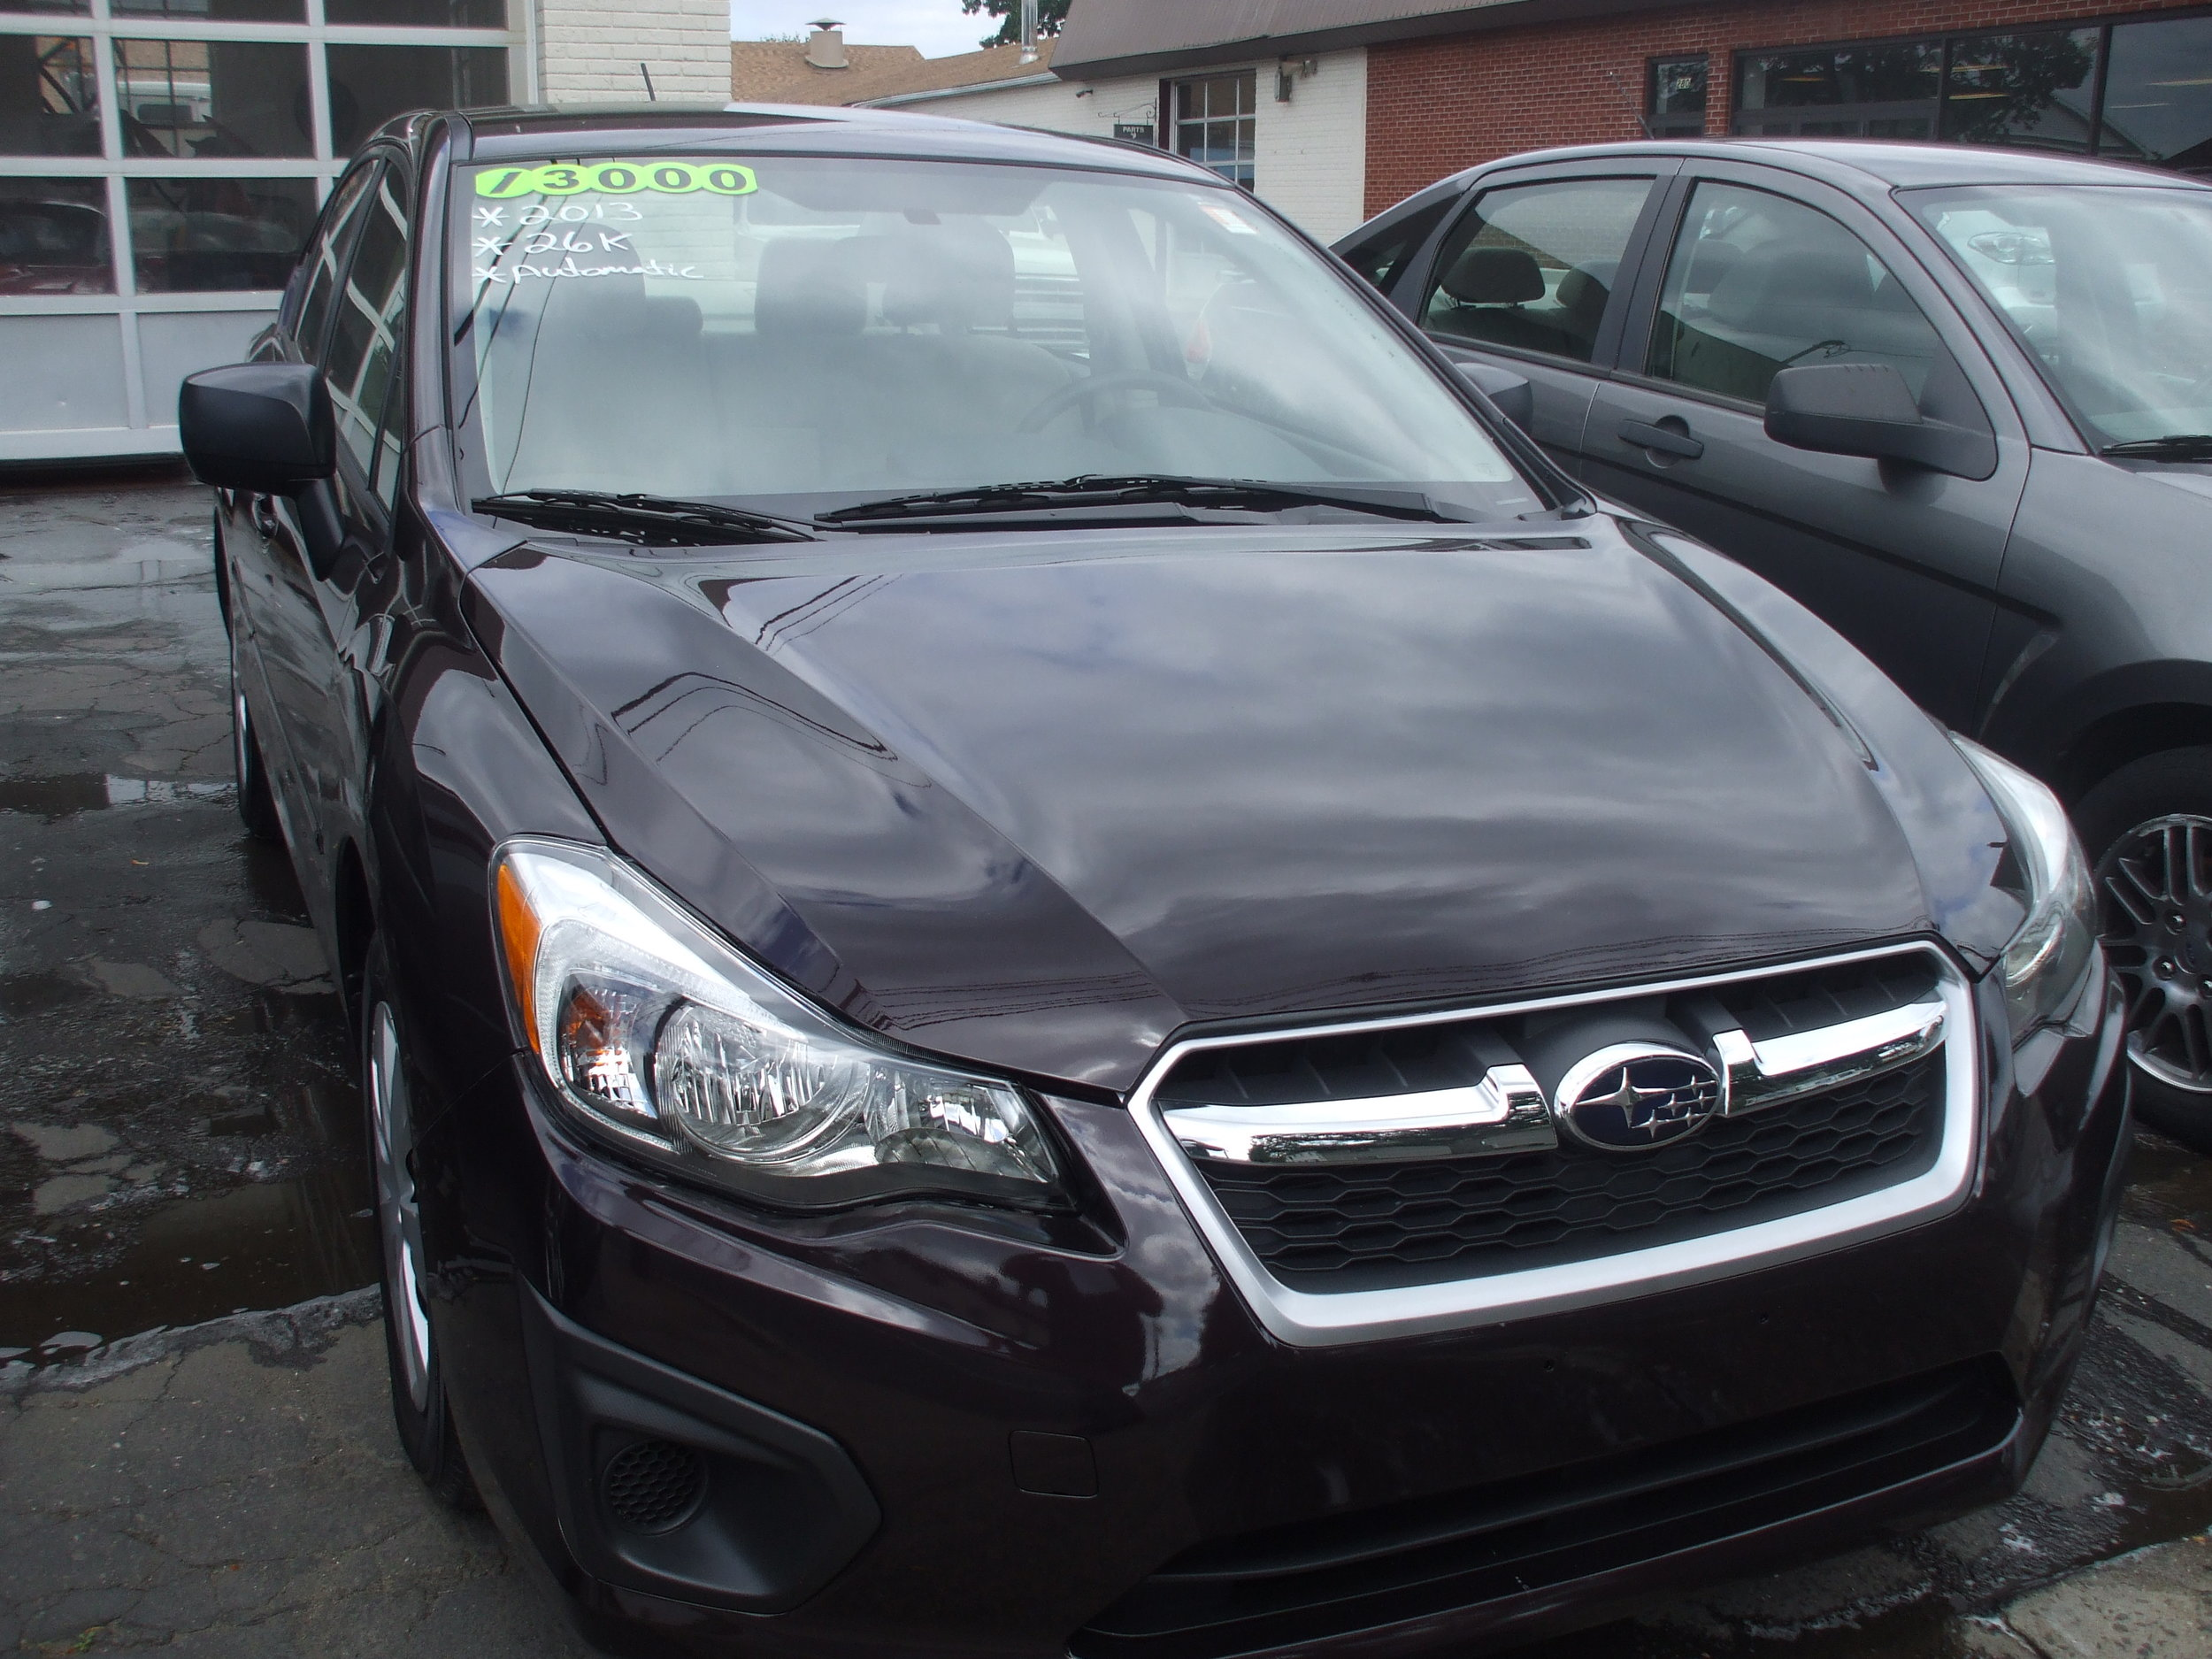 2013 Subaru Impreza 4 door $13,000  Automatic stock #       Black30k Great Condition Warranty call or stop by Cerritos Auto Sales 280 N Colony St wallingford ct 06492.